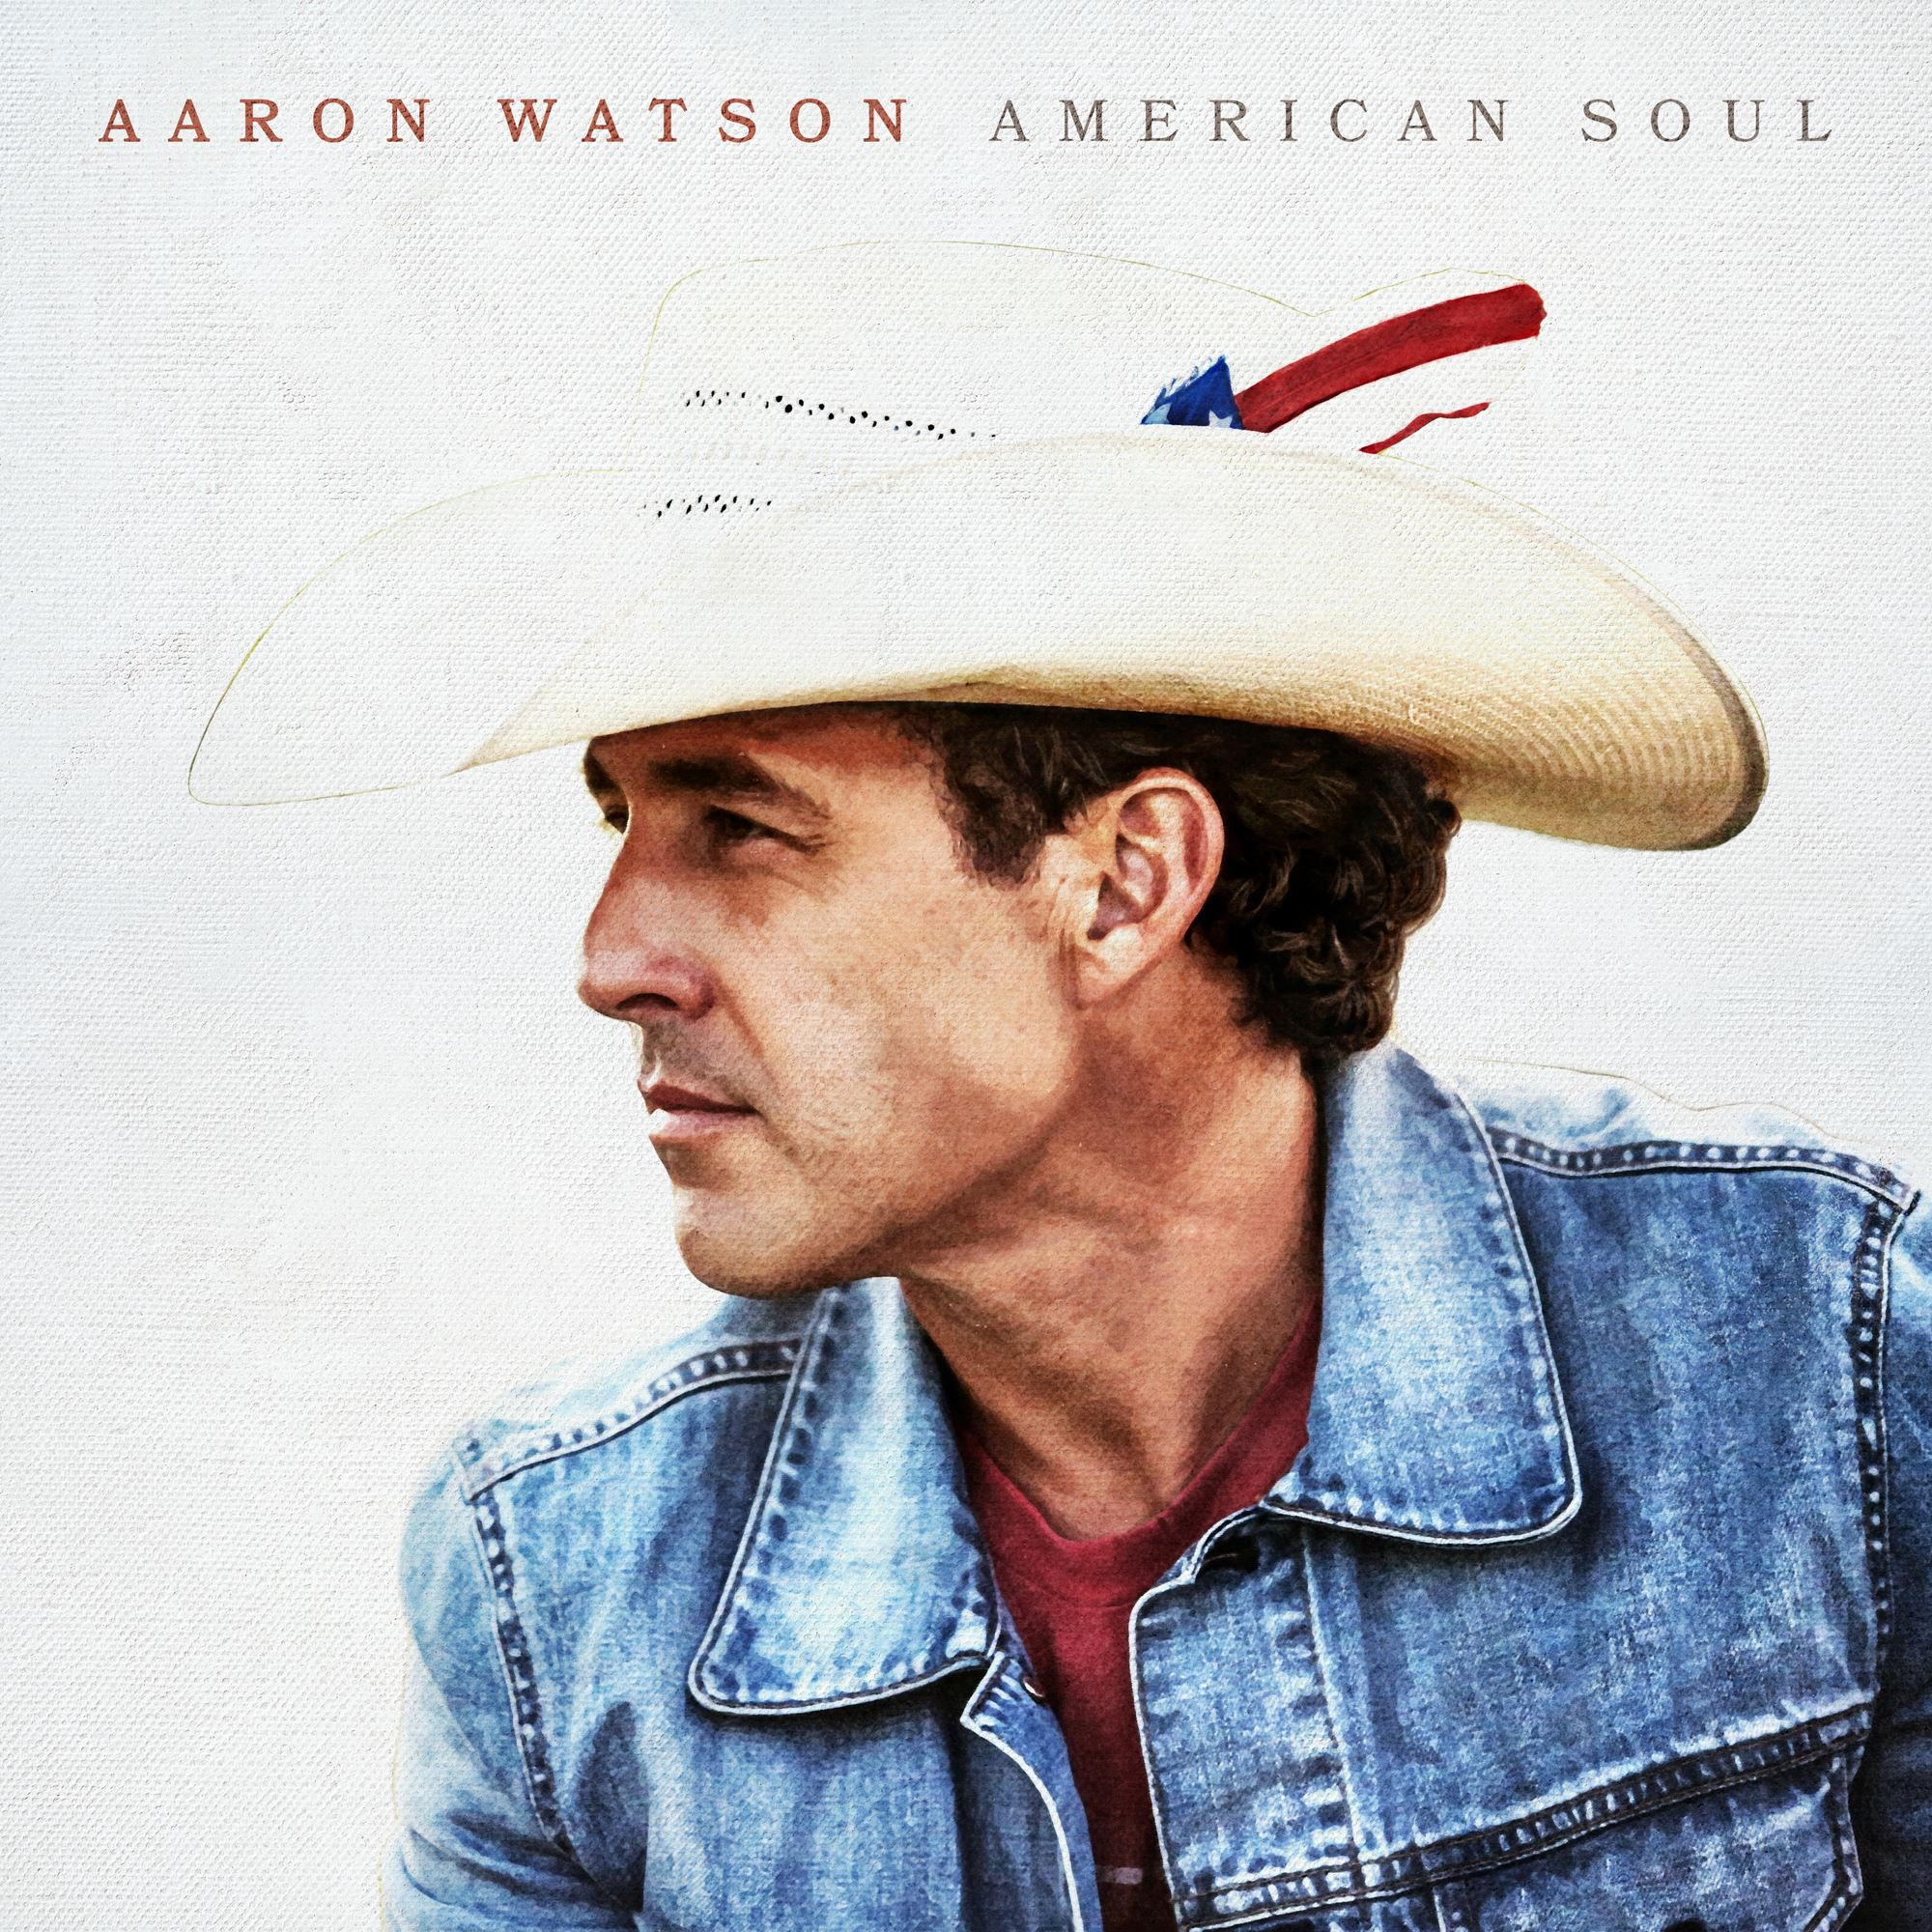 Ranch Rodeo w/ Aaron Watson <br> Sunday, Feb. 21 at 4 PM